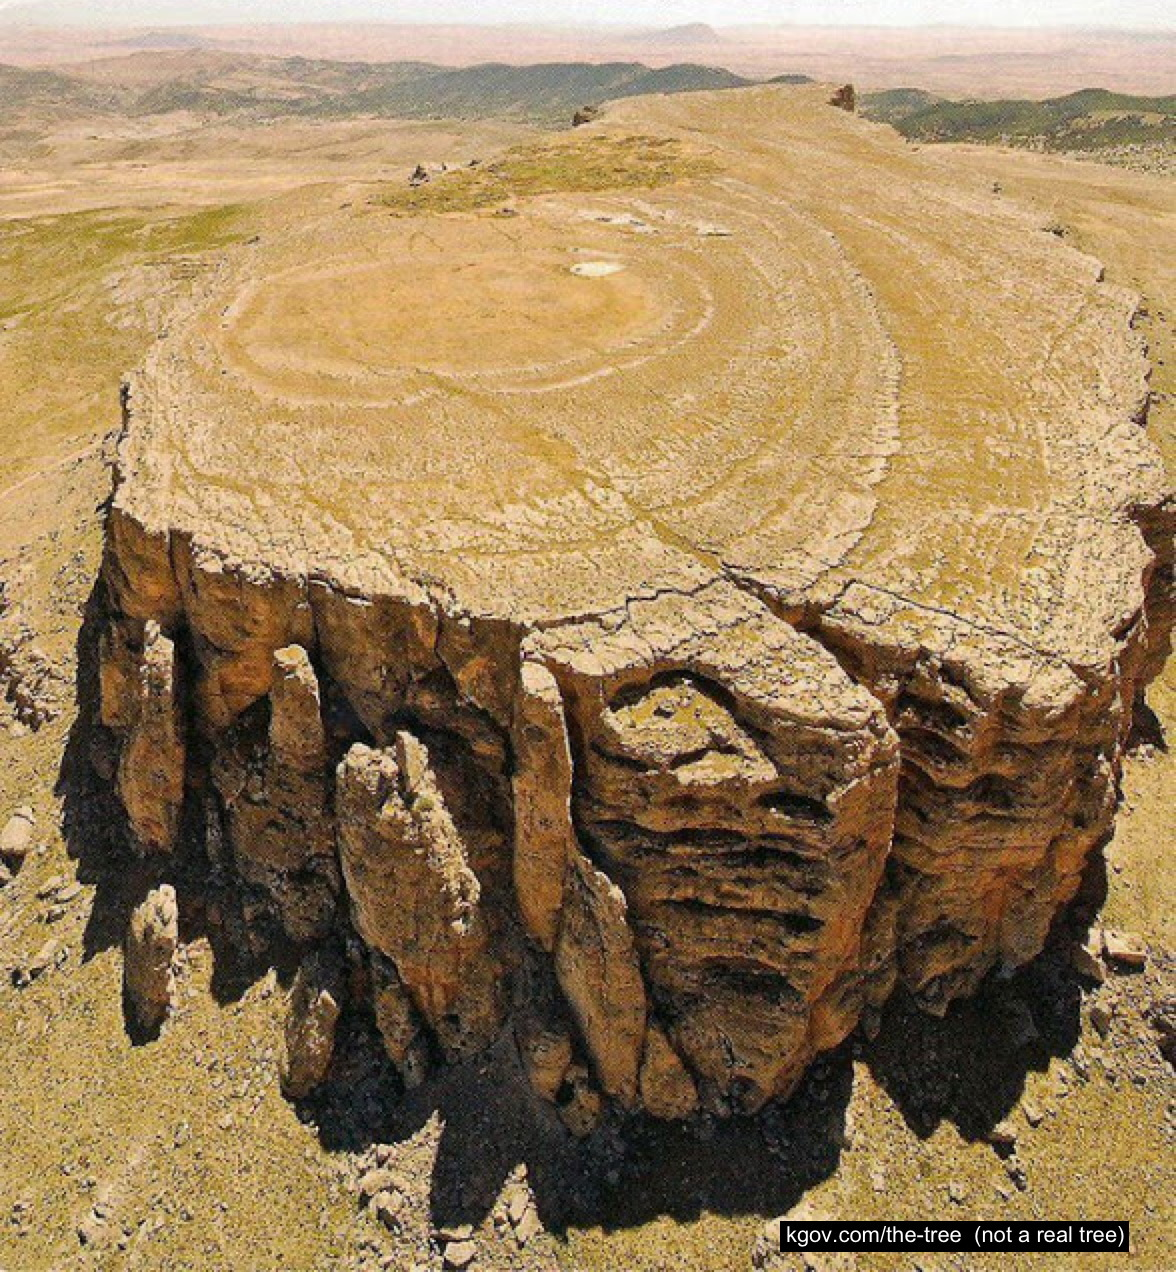 Not a photo of a tree but a tree-like geological structure